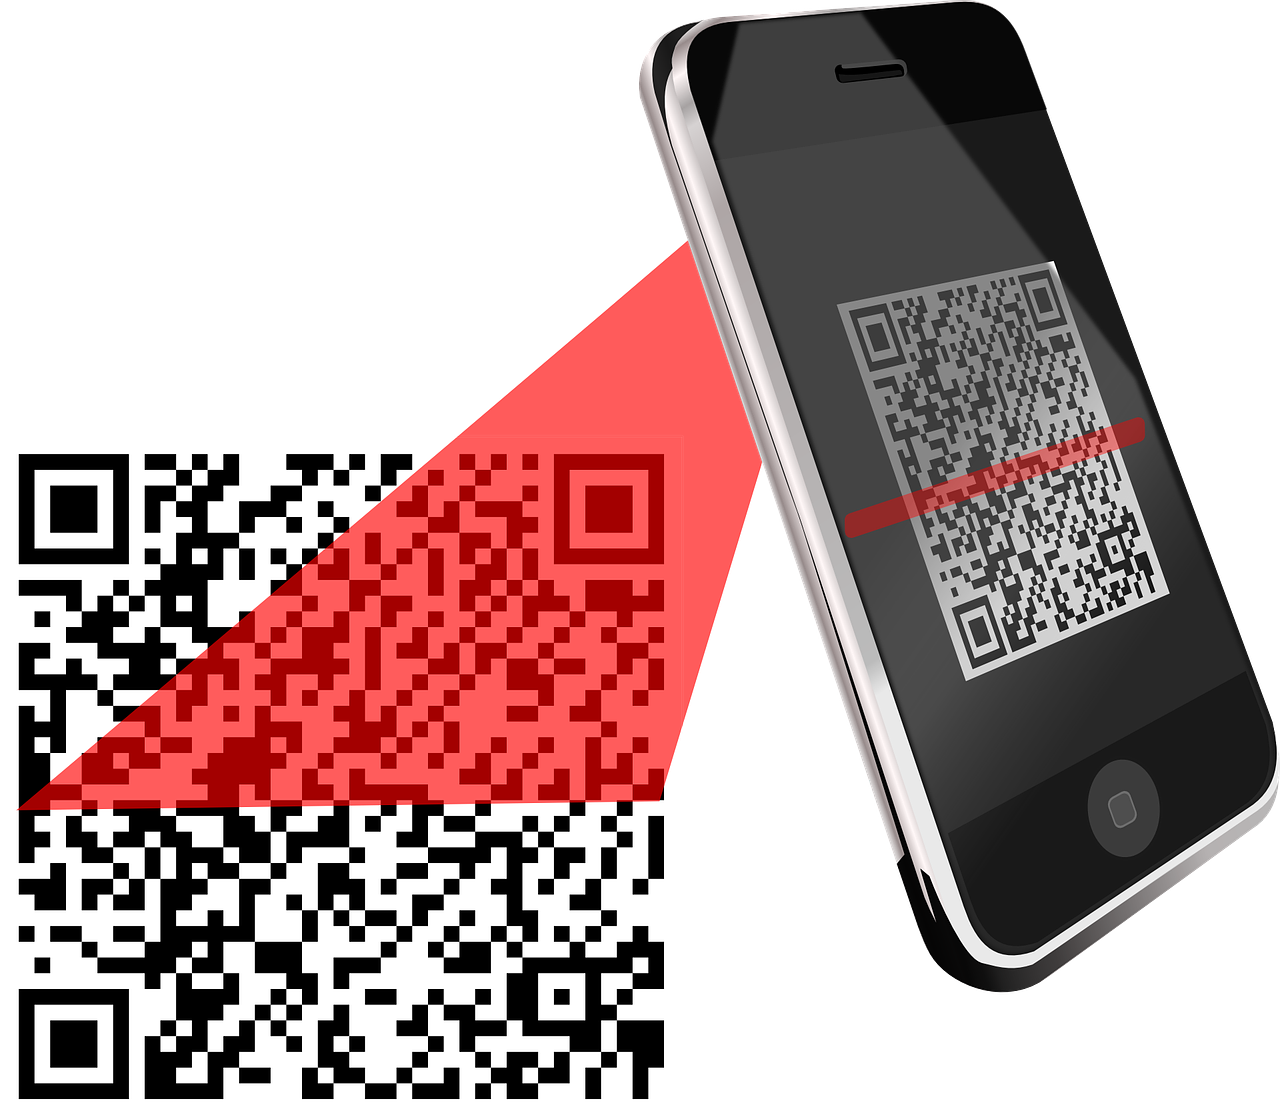 QR Code being scanned with a phone